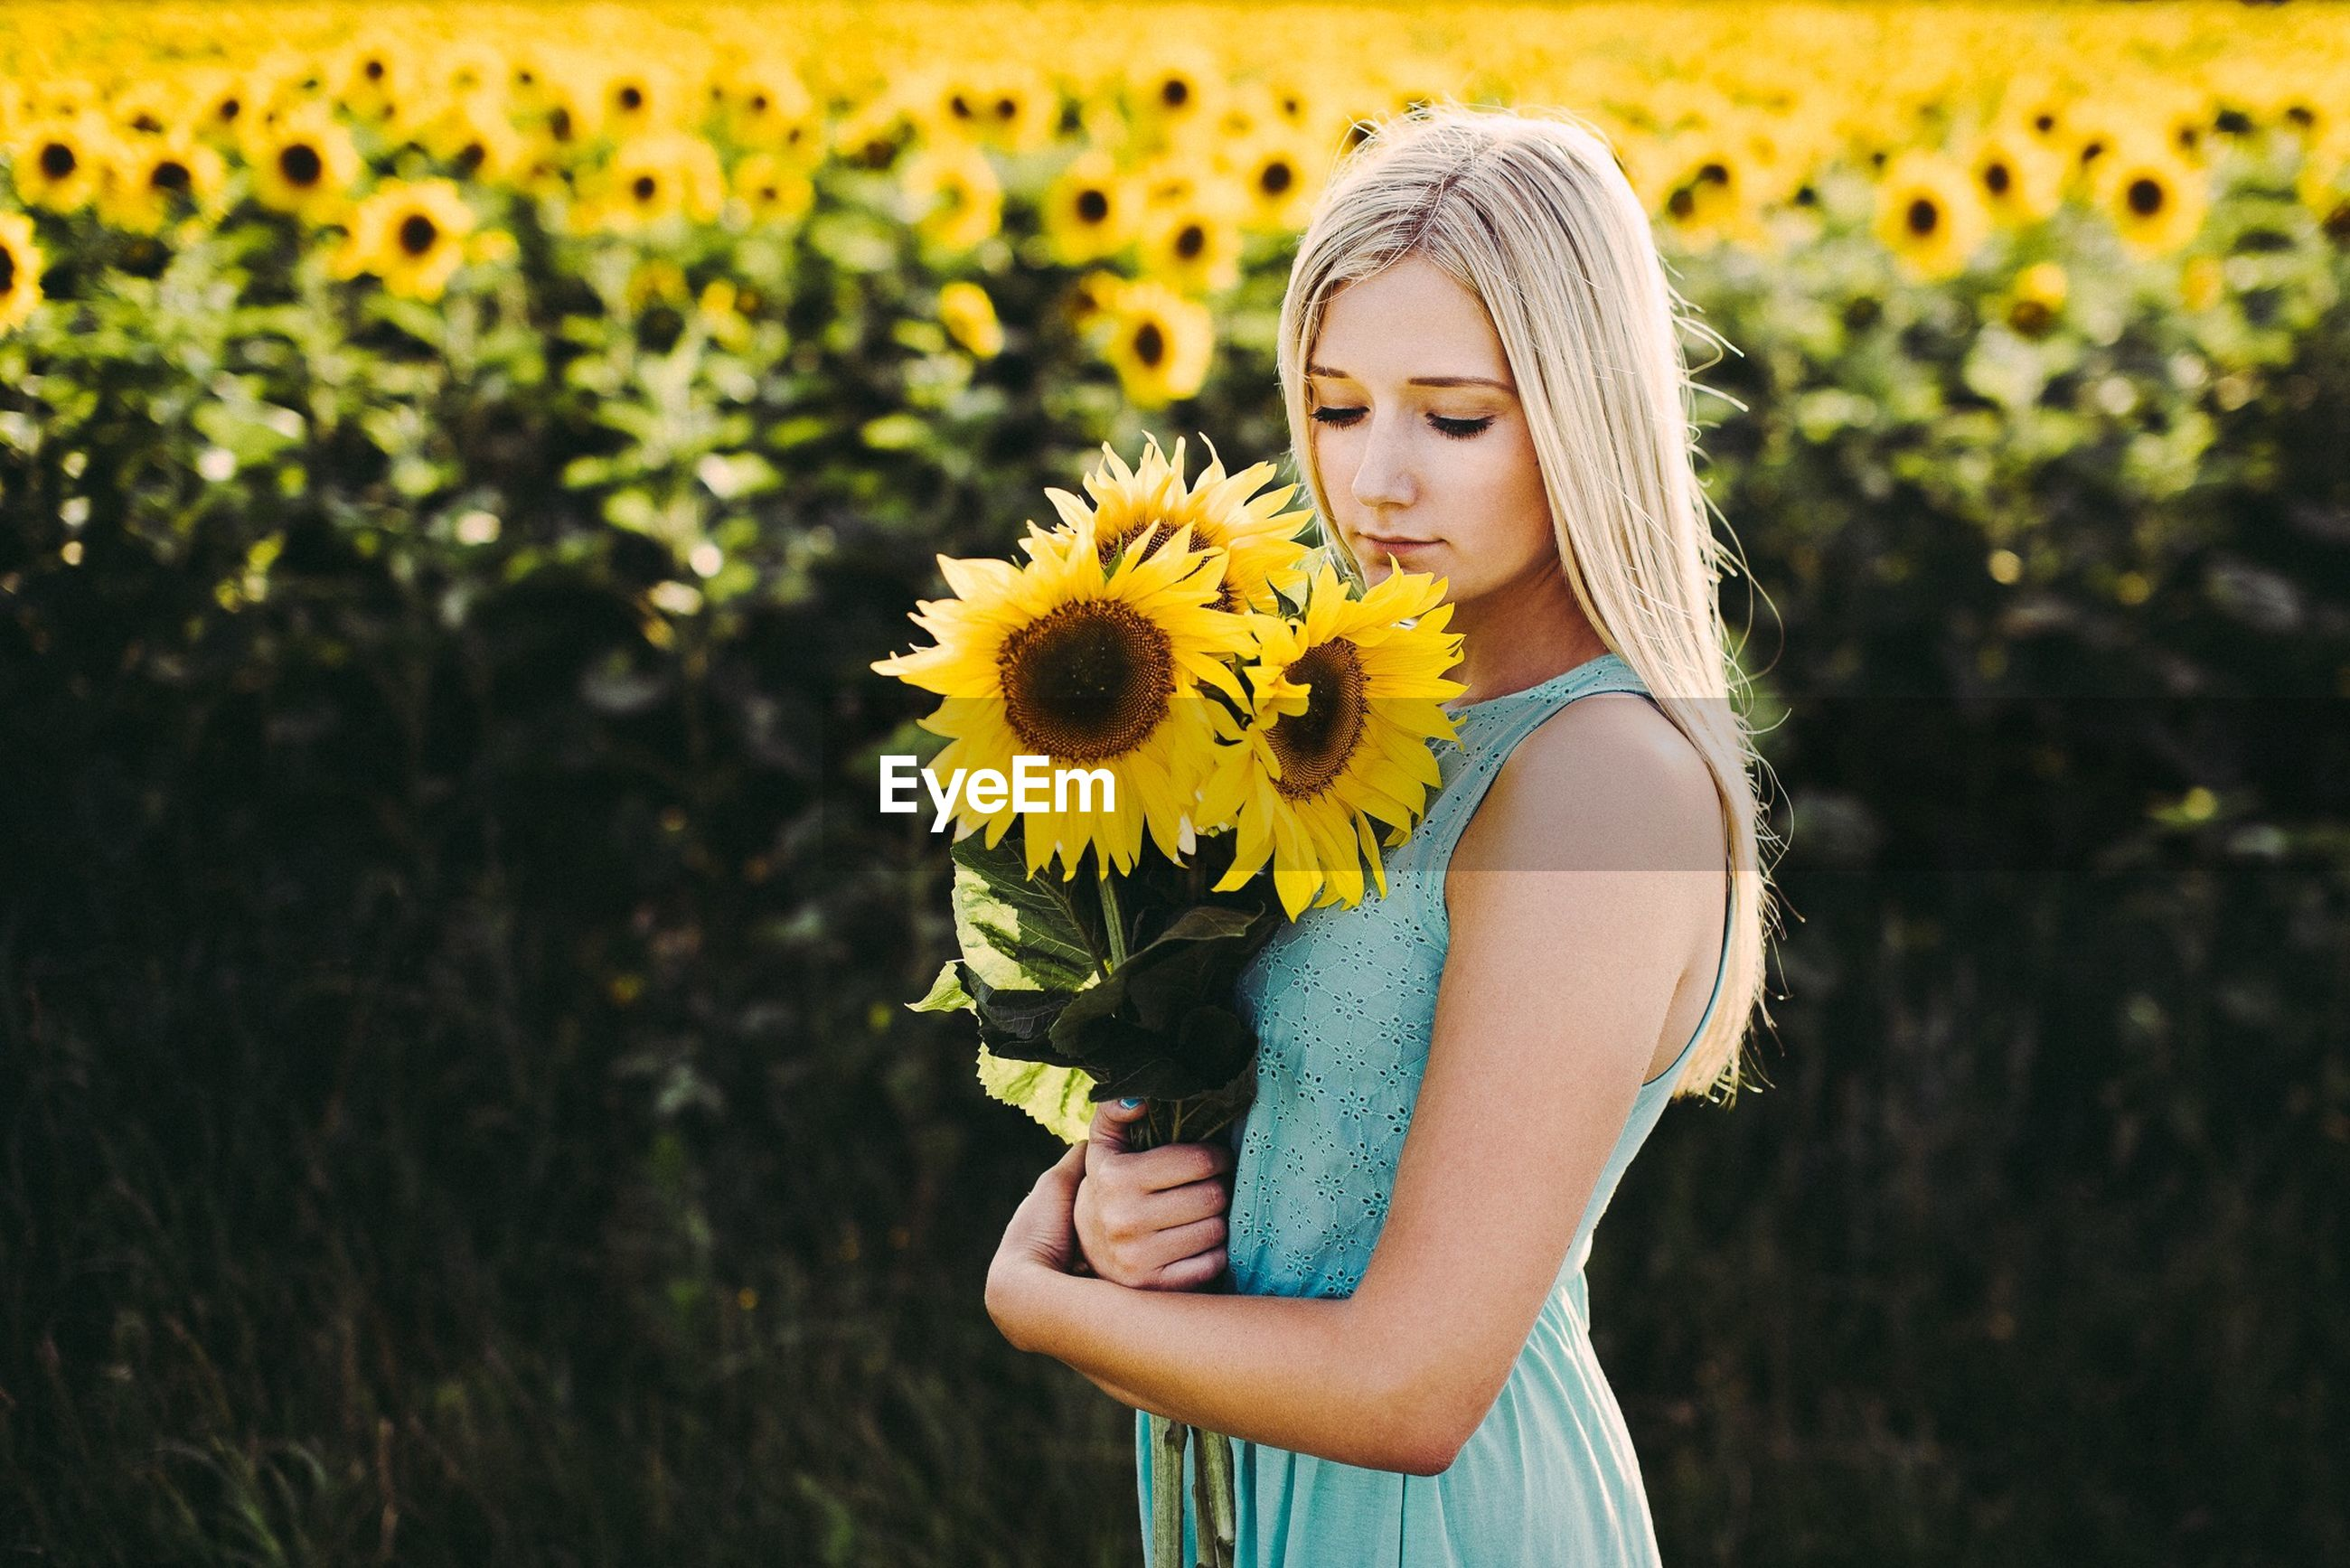 Young woman holding sunflowers on field